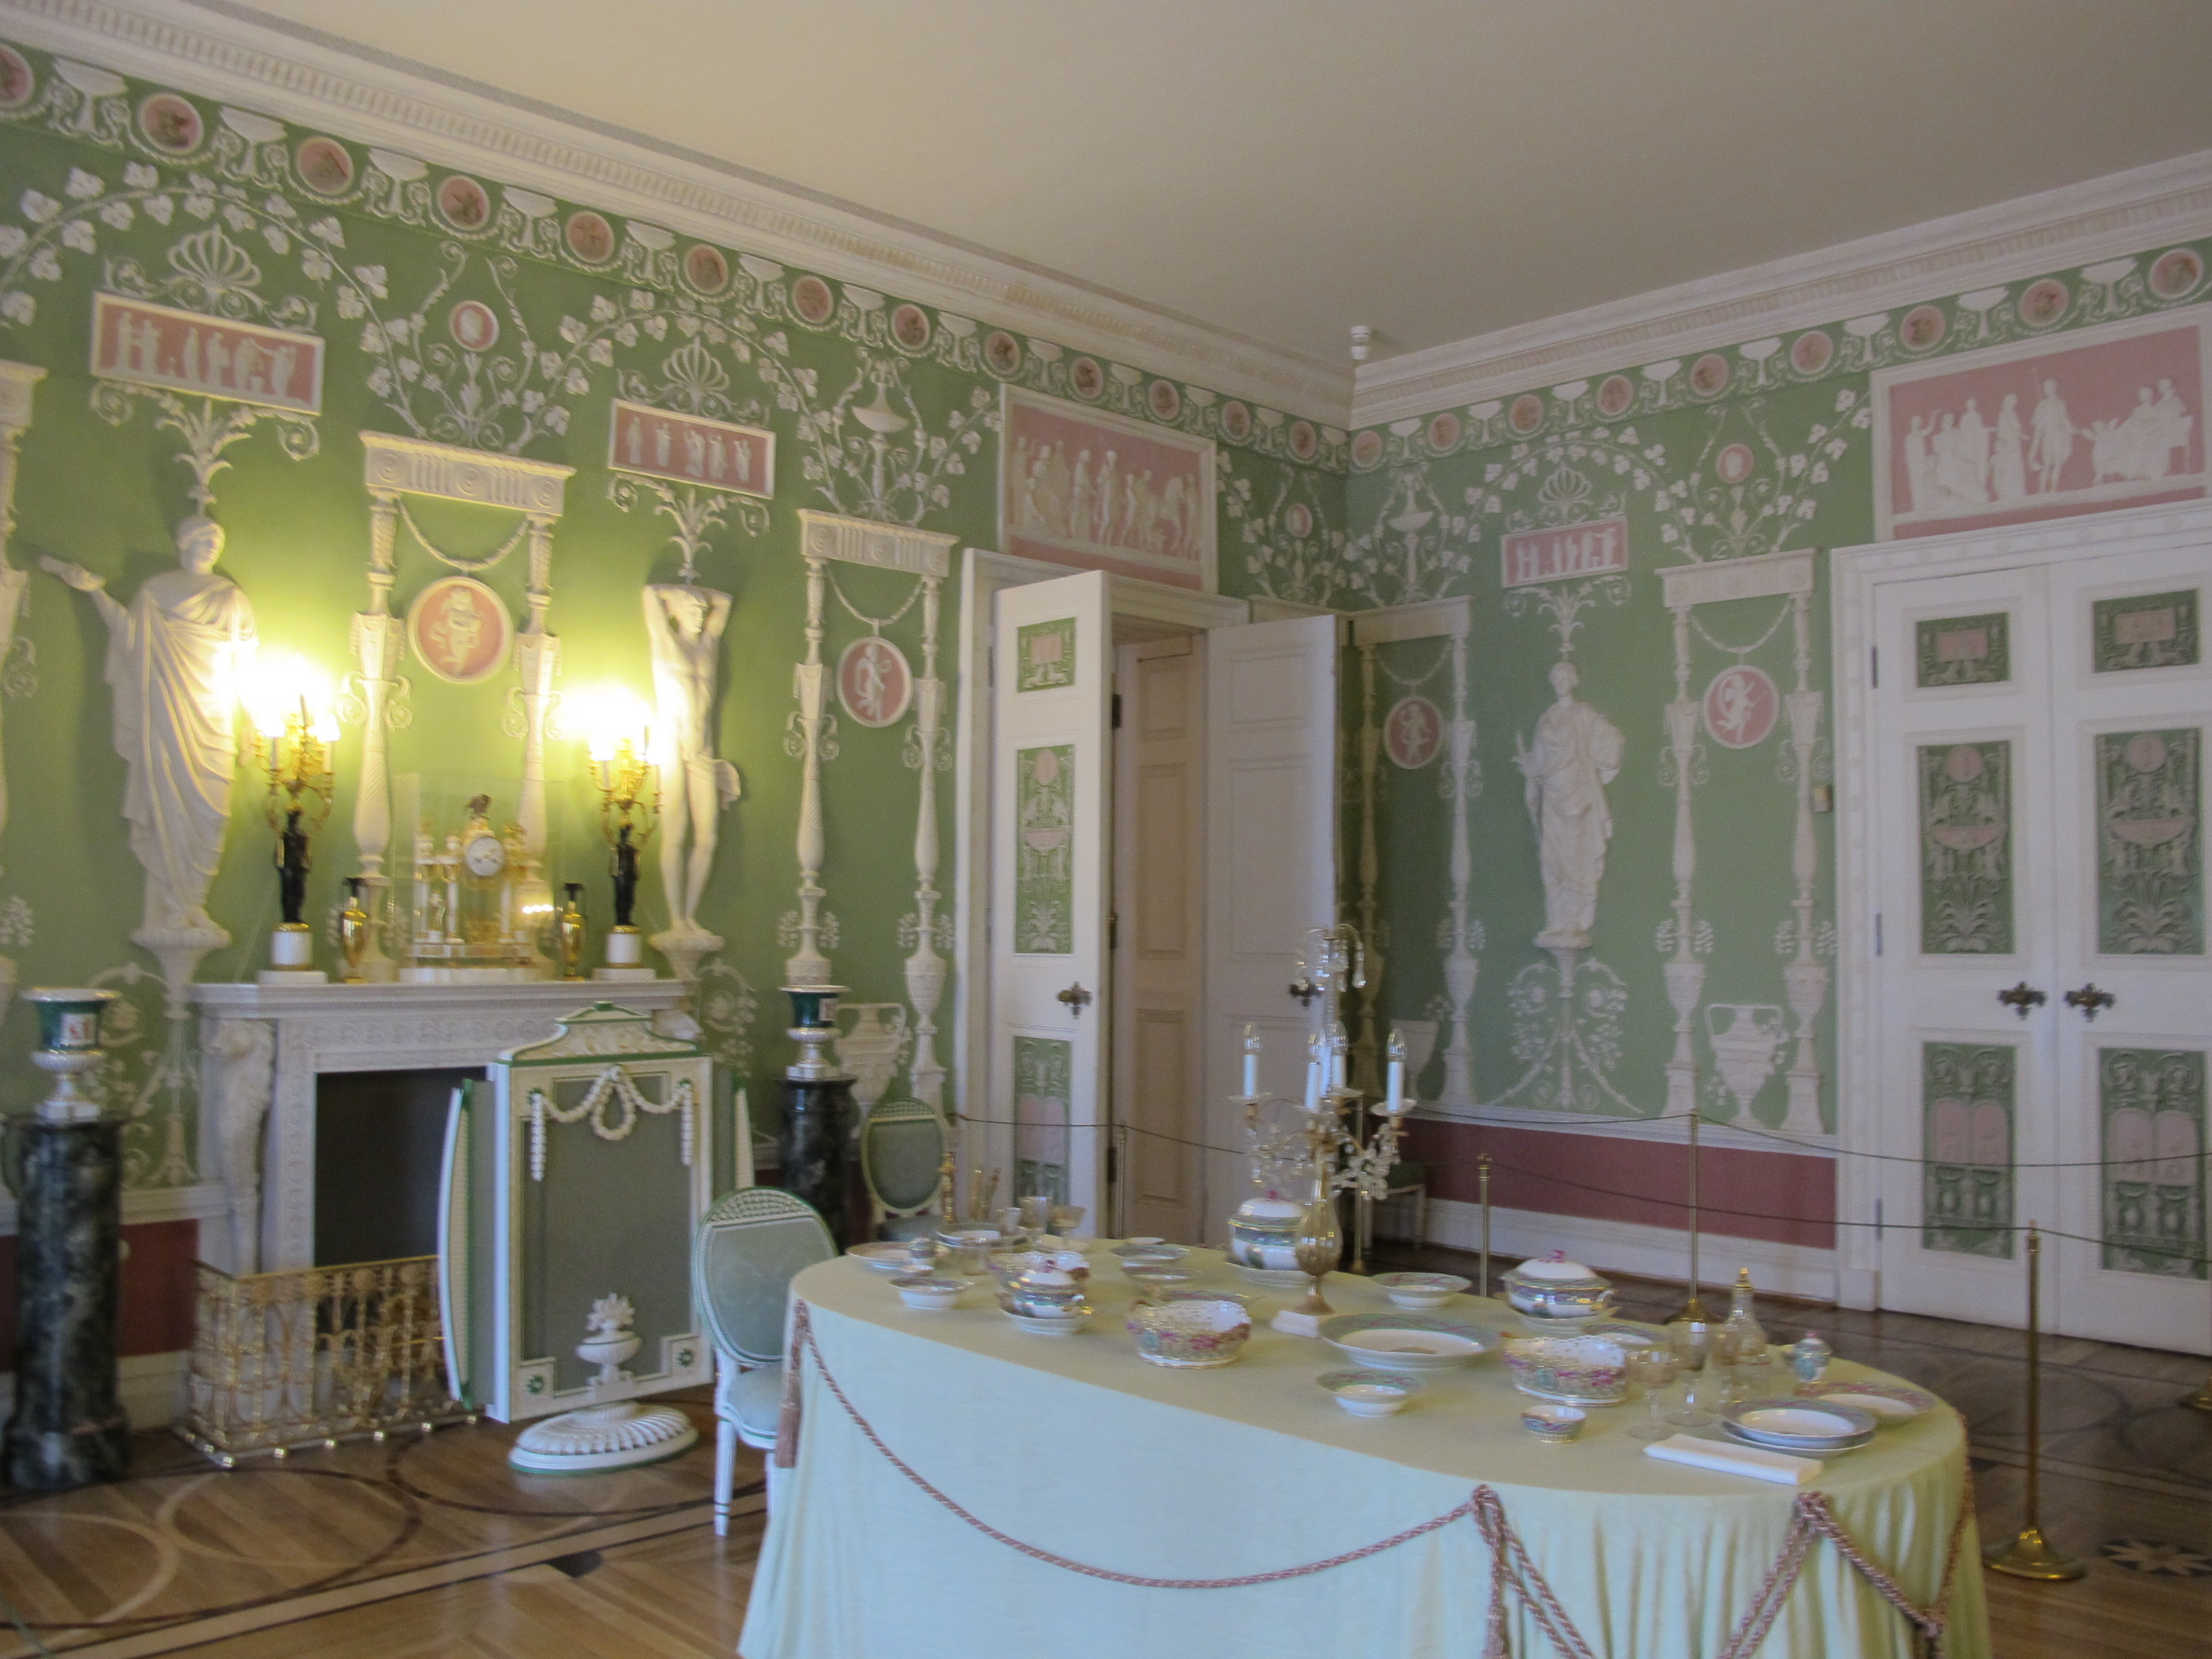 File:Green Dining Room Of The Catherine Palace 02.JPG